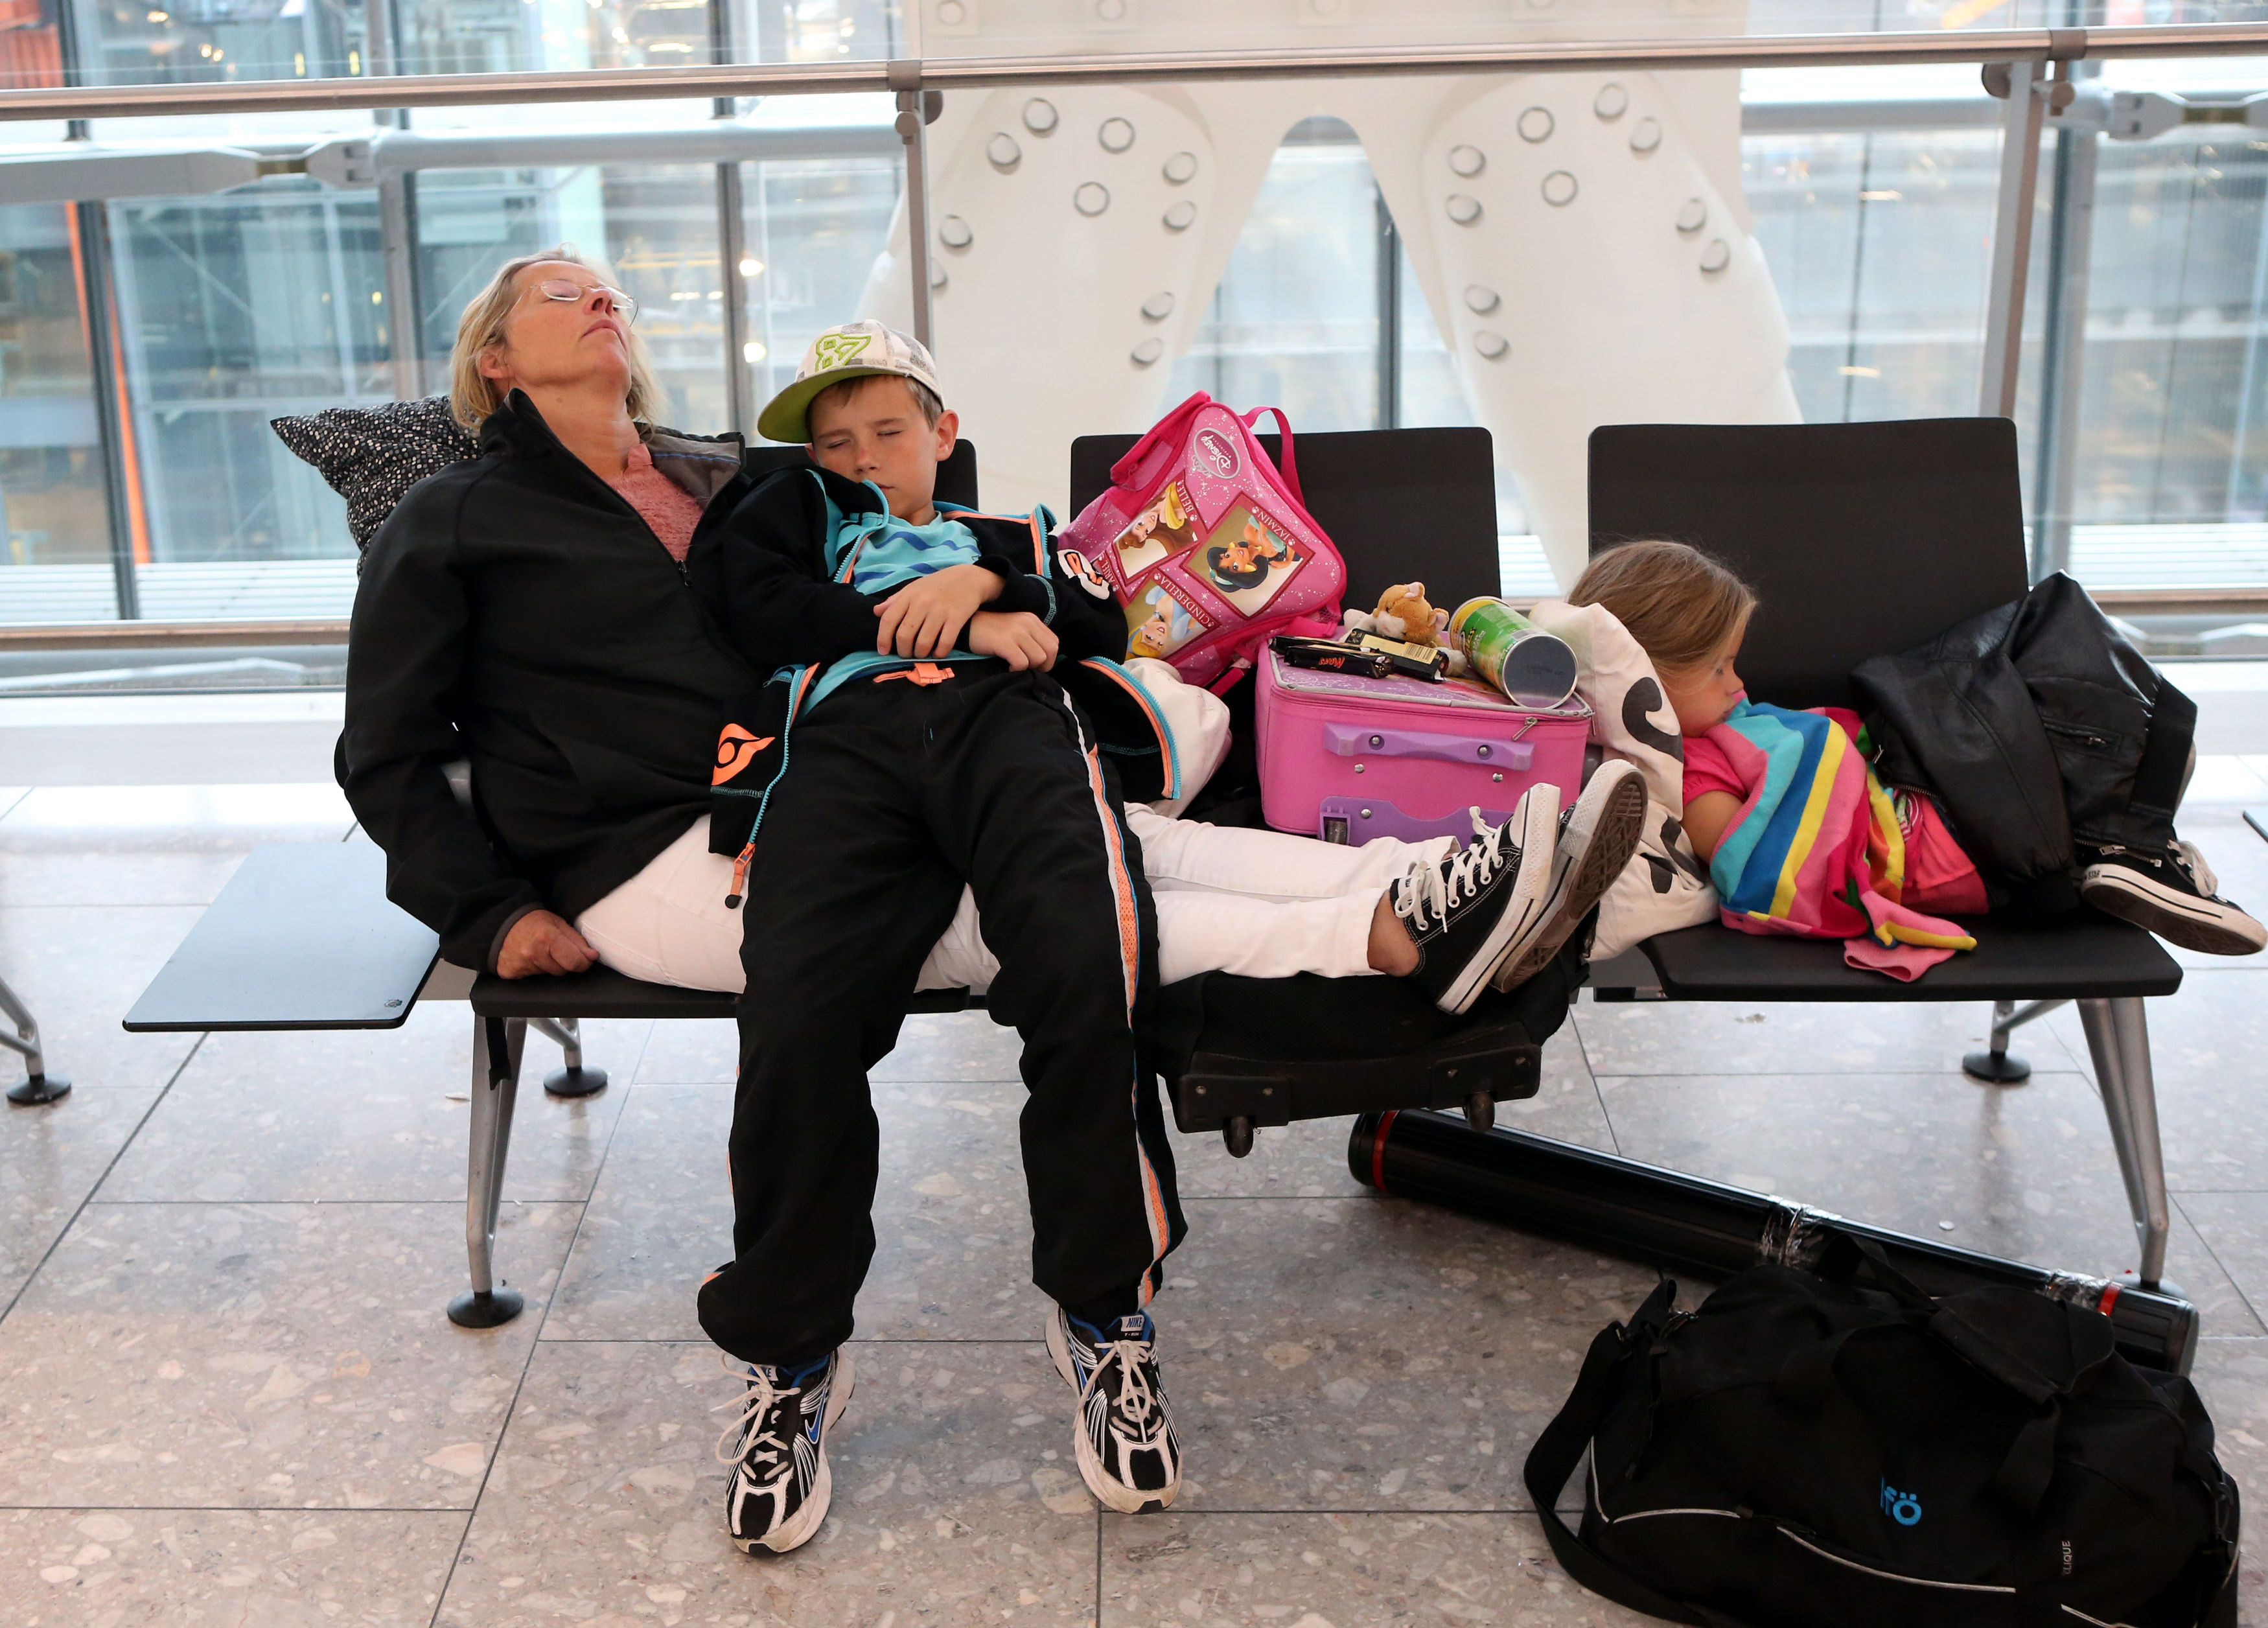 9 annoying things that always happen at the airport